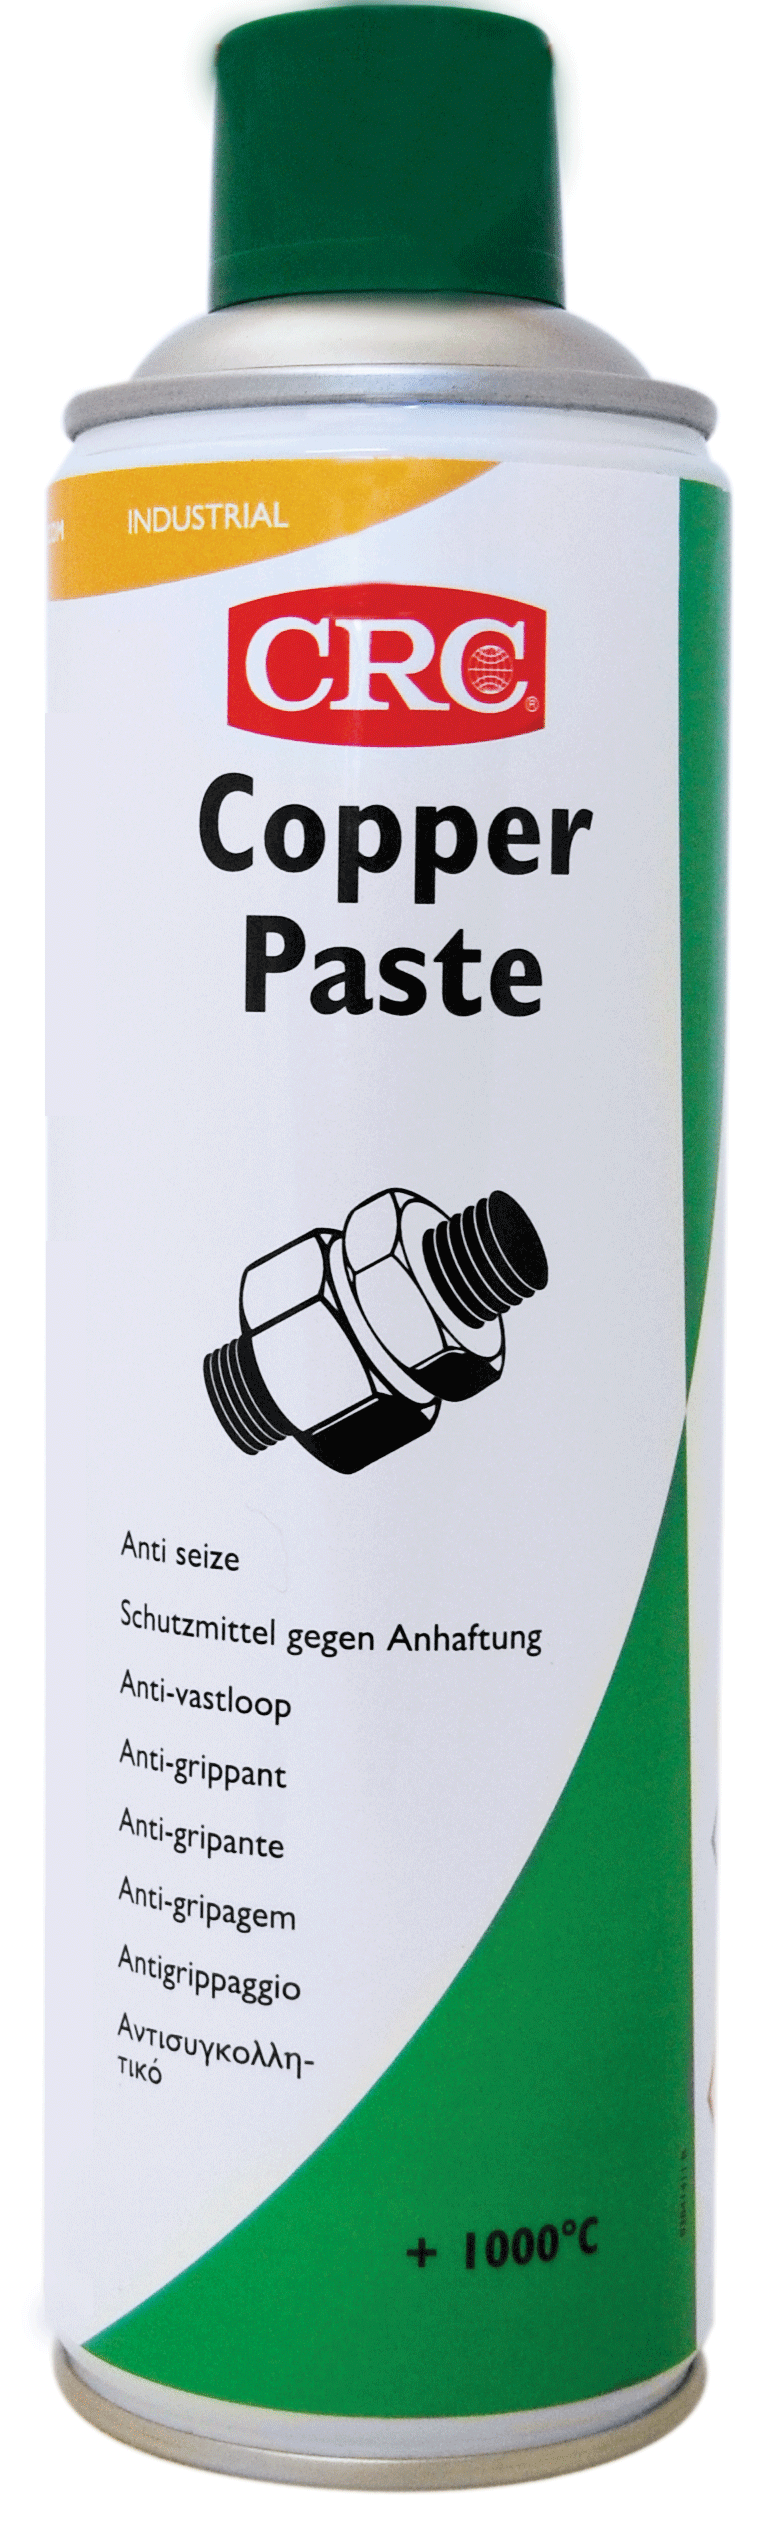 Afbeelding van crc industry copper paste 300 ml, spuitbus